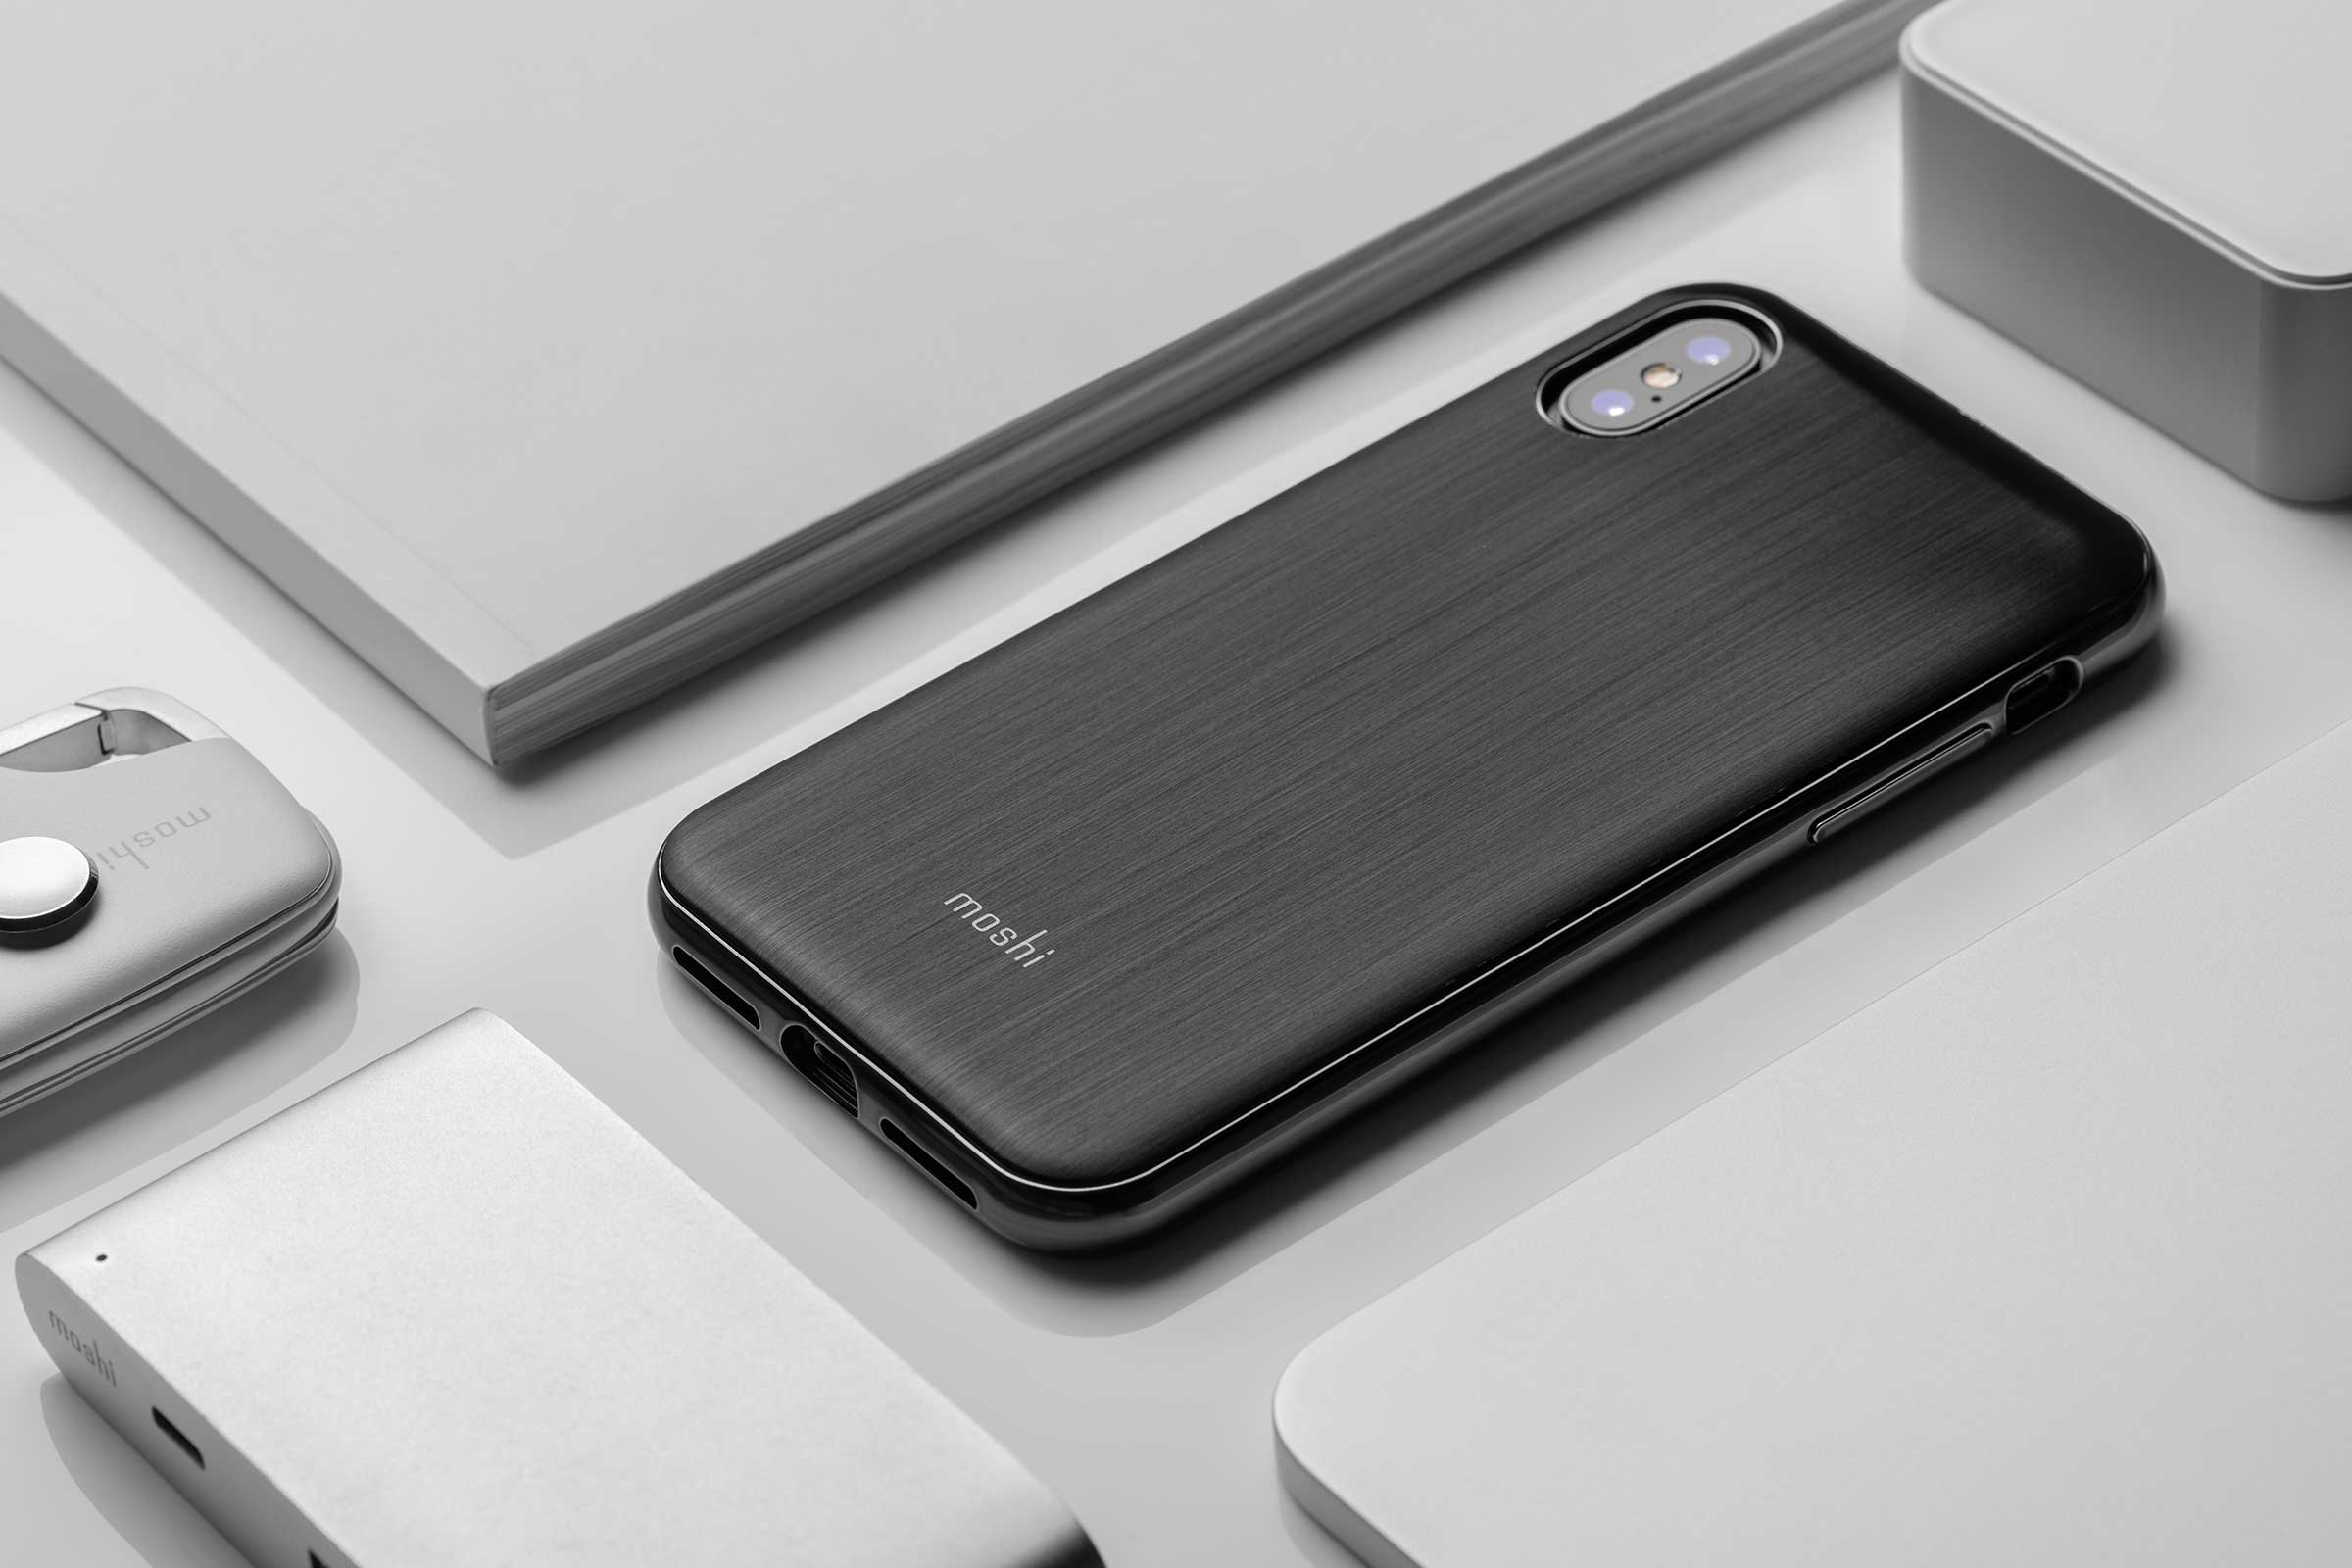 A select range of accessories arranged geometrically, with iGlaze for iPhone as the focus.